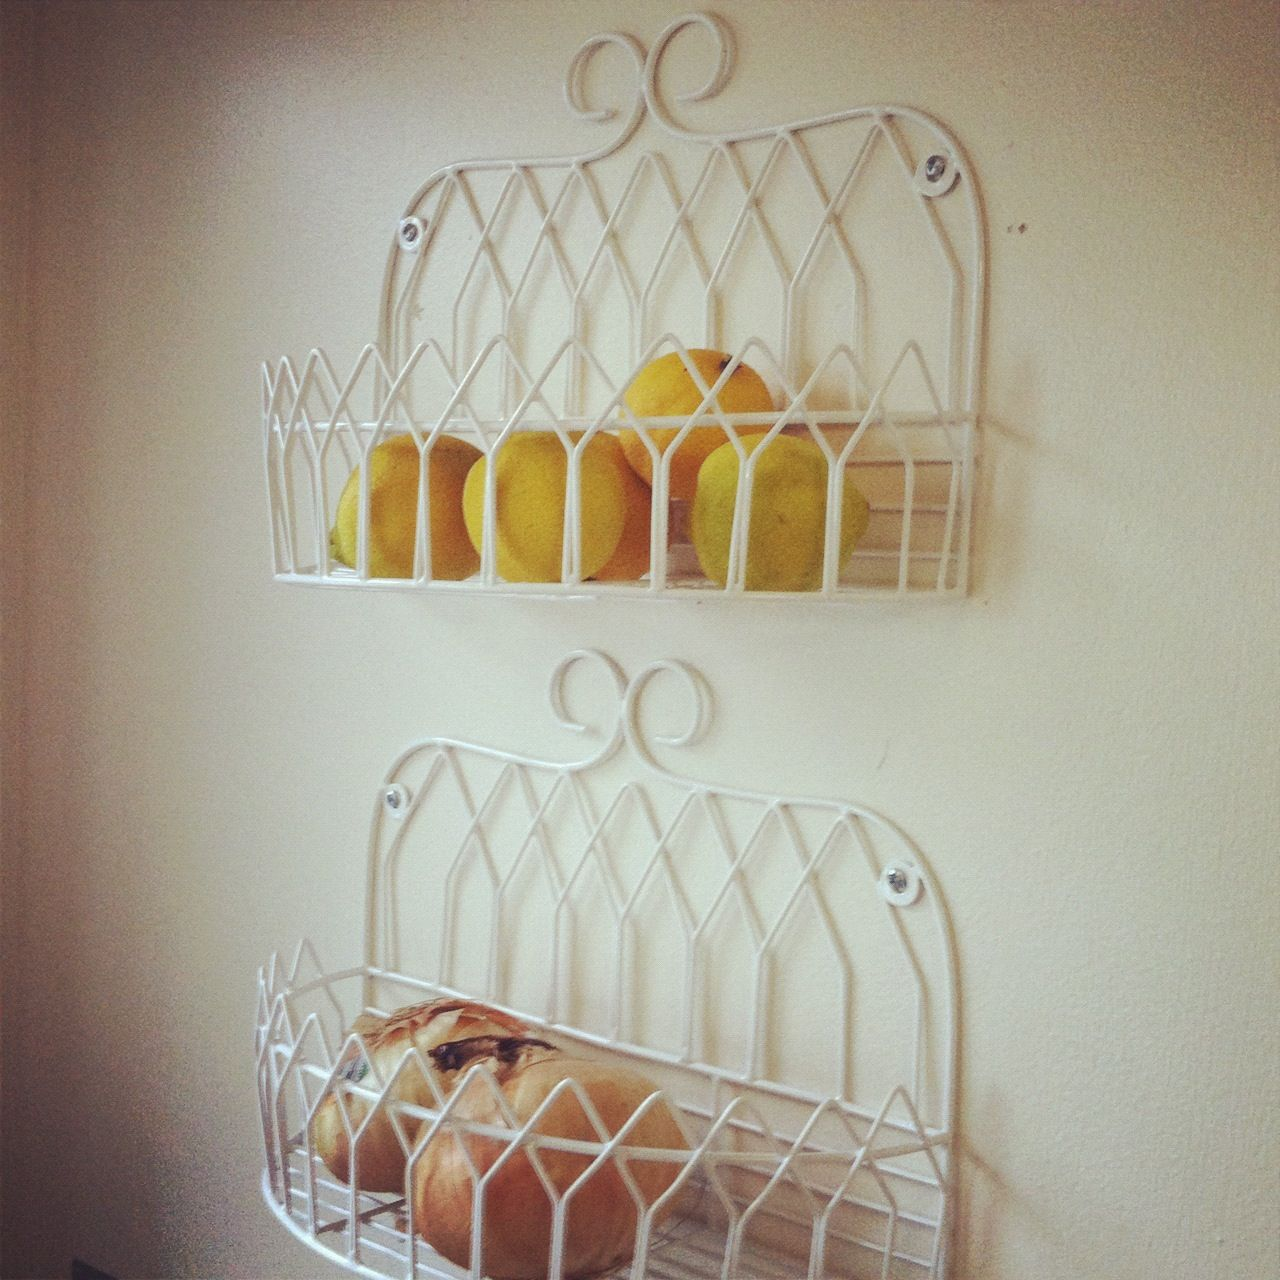 Hanging Basket Kitchen Wall Storage Cute To Keep Fruit And Veggies Out Of The Way